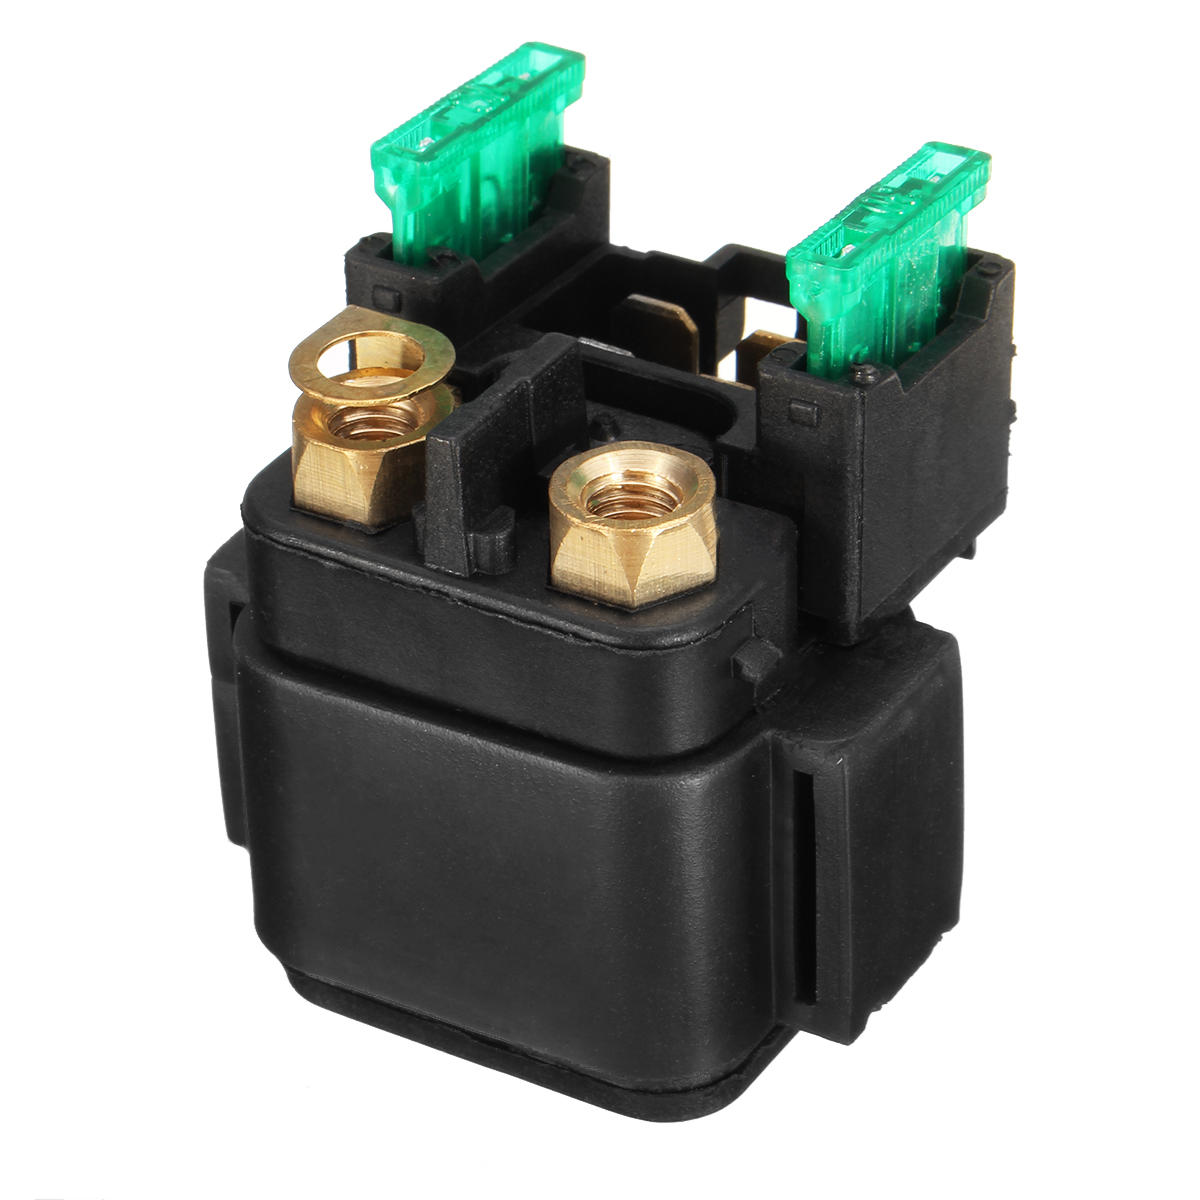 Universal Starter Solenoid Relay For KTM 200 250 300 350 Exc Exc-F on